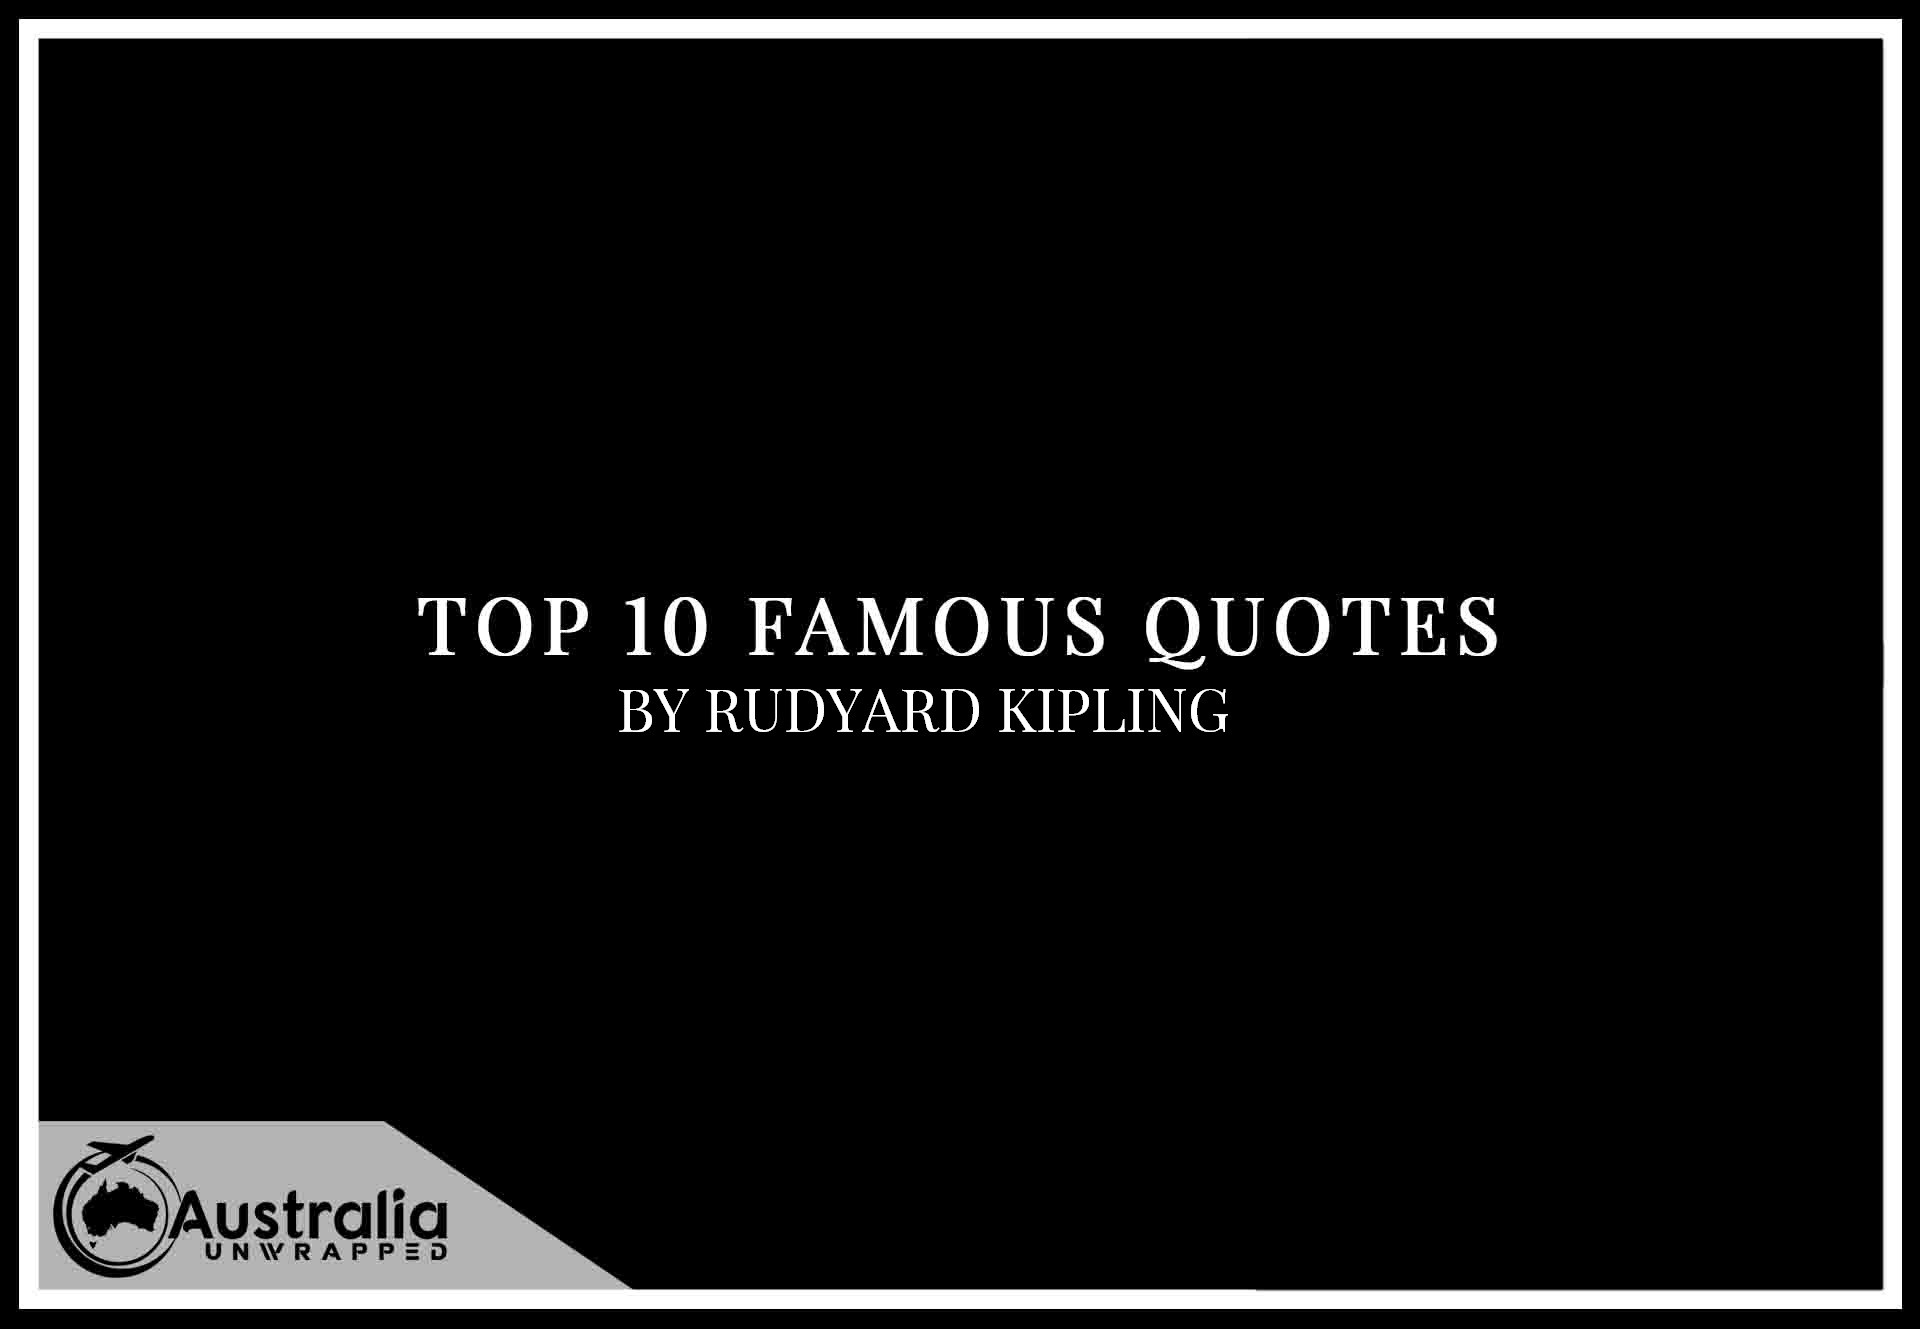 Top 10 Famous Quotes by Author Rudyard Kipling